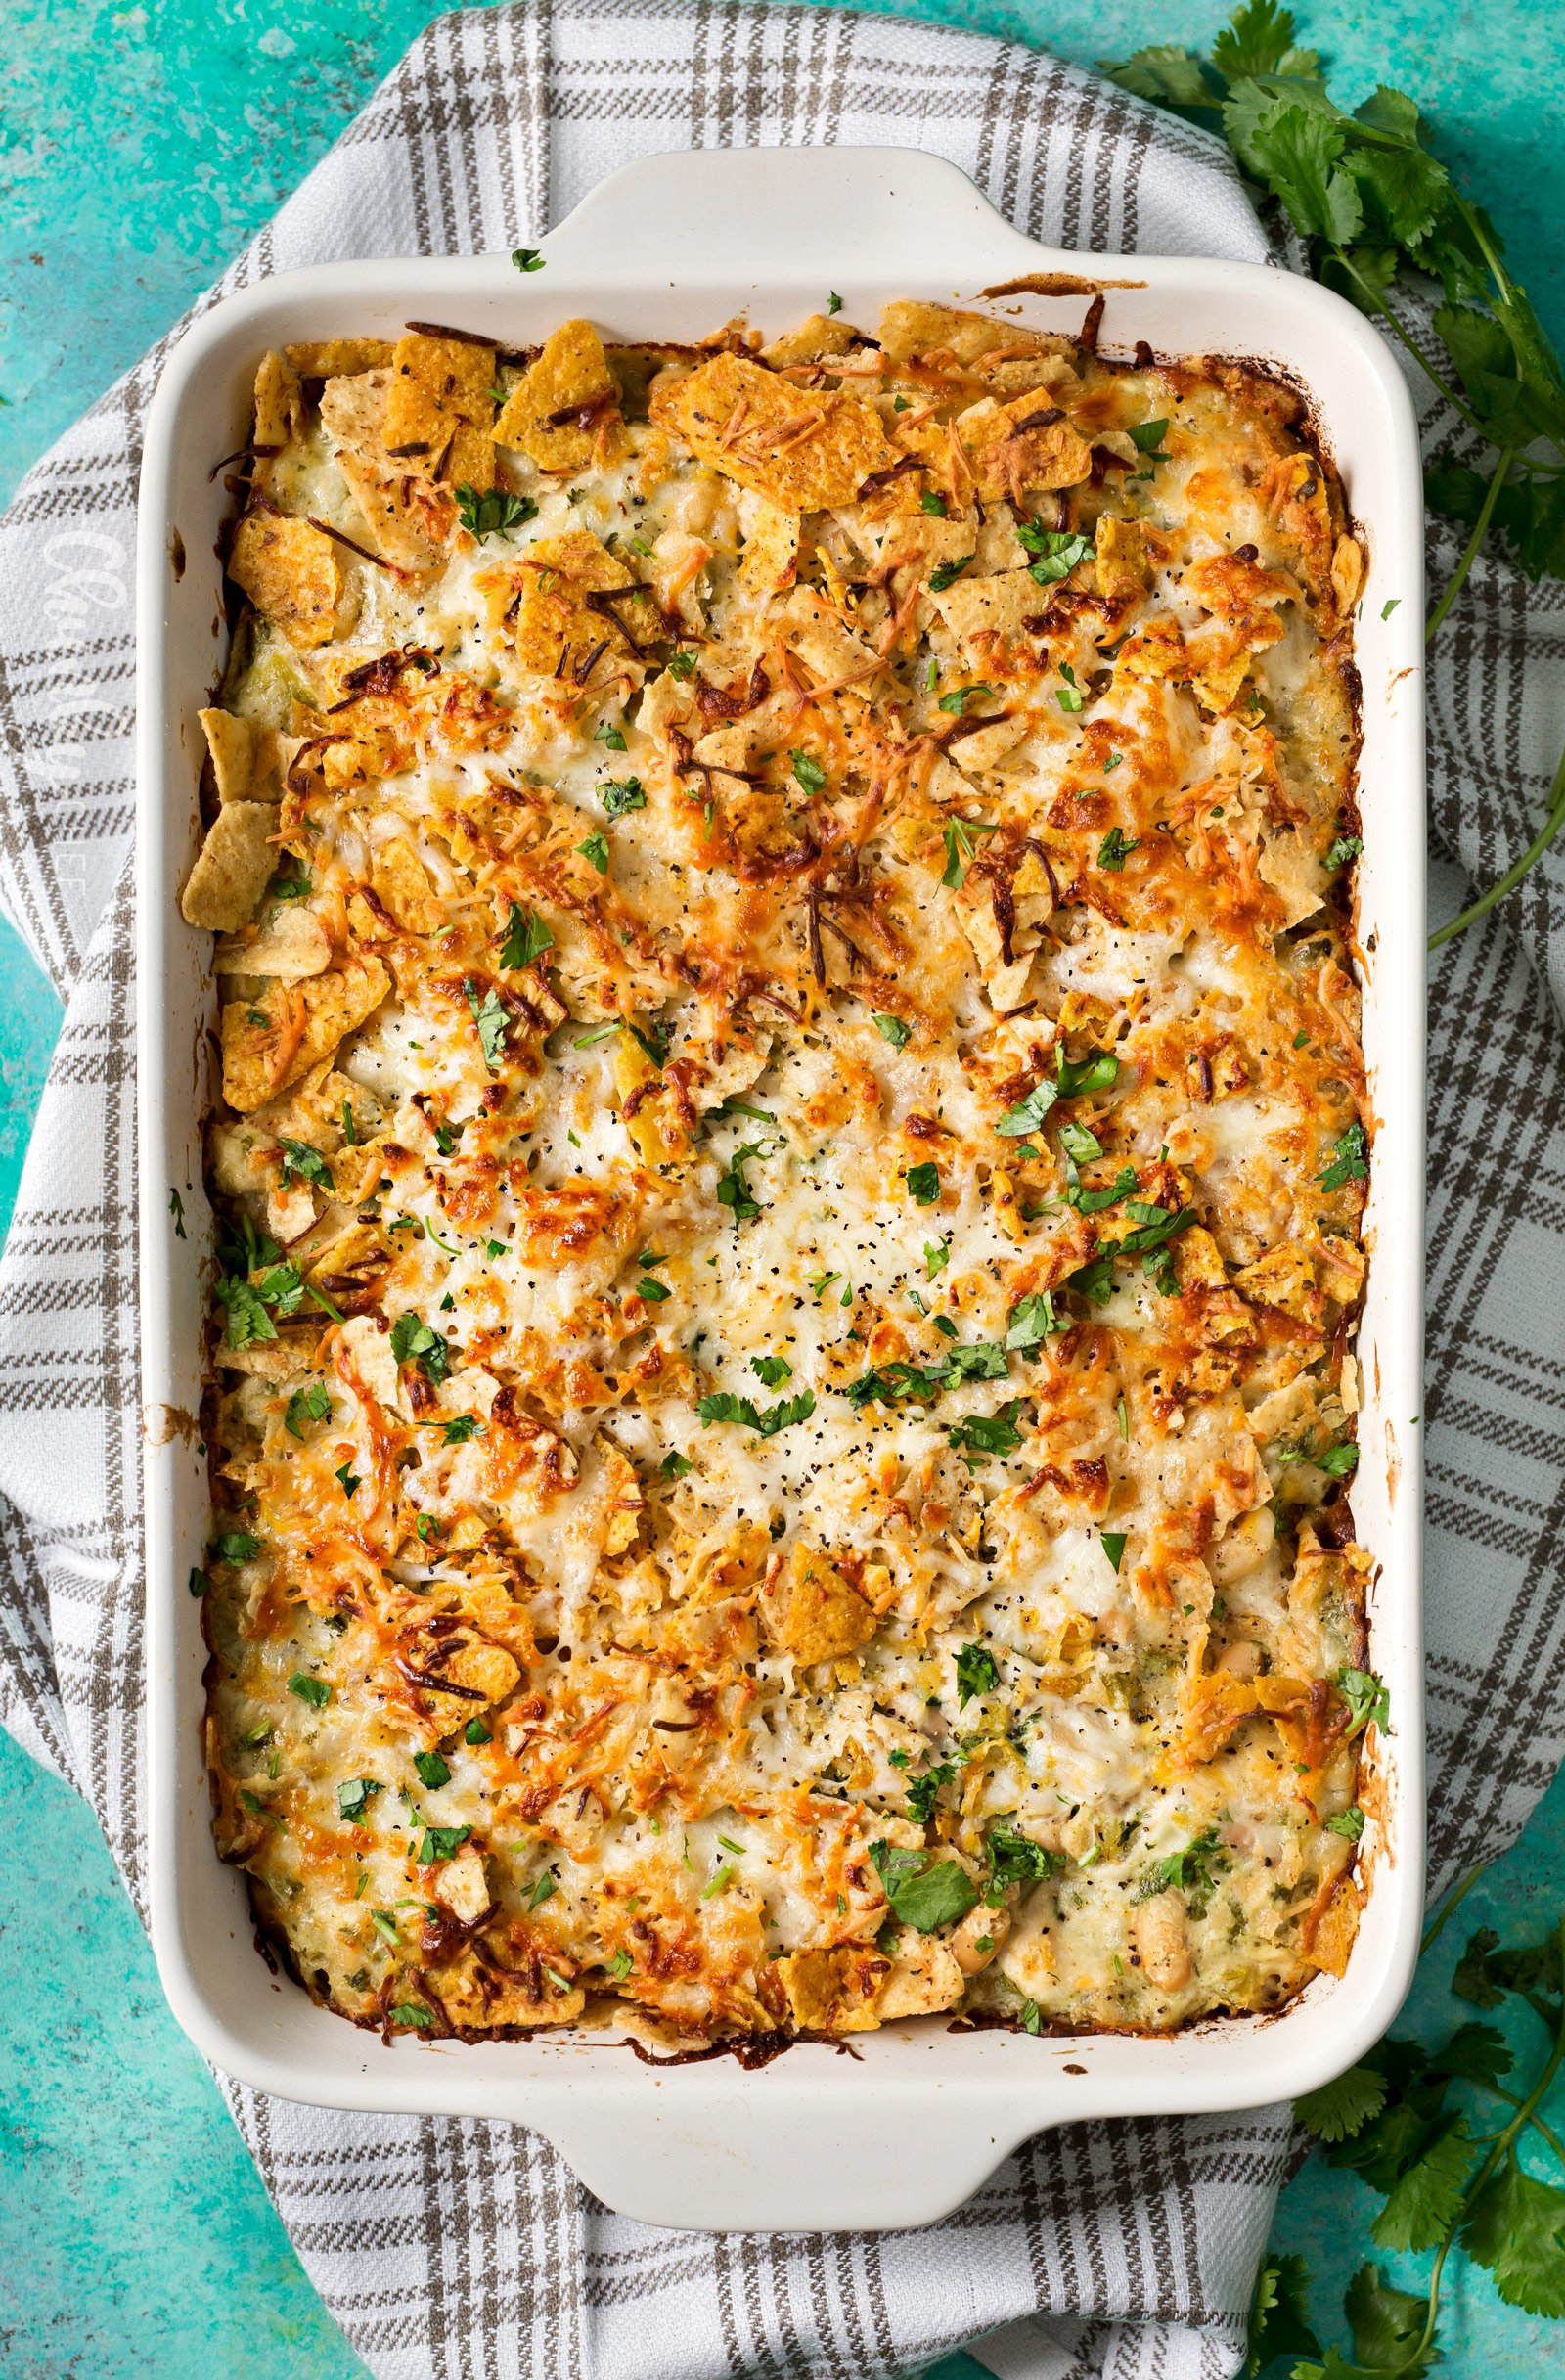 Cheesy Chicken Tortilla Casserole   A rotisserie chicken, creamy salsa verde sauce, plenty of gooey cheese and crunchy tortilla chips... it's the perfect casserole that's easy to prep ahead for a weeknight dinner!   http://thechunkychef.com